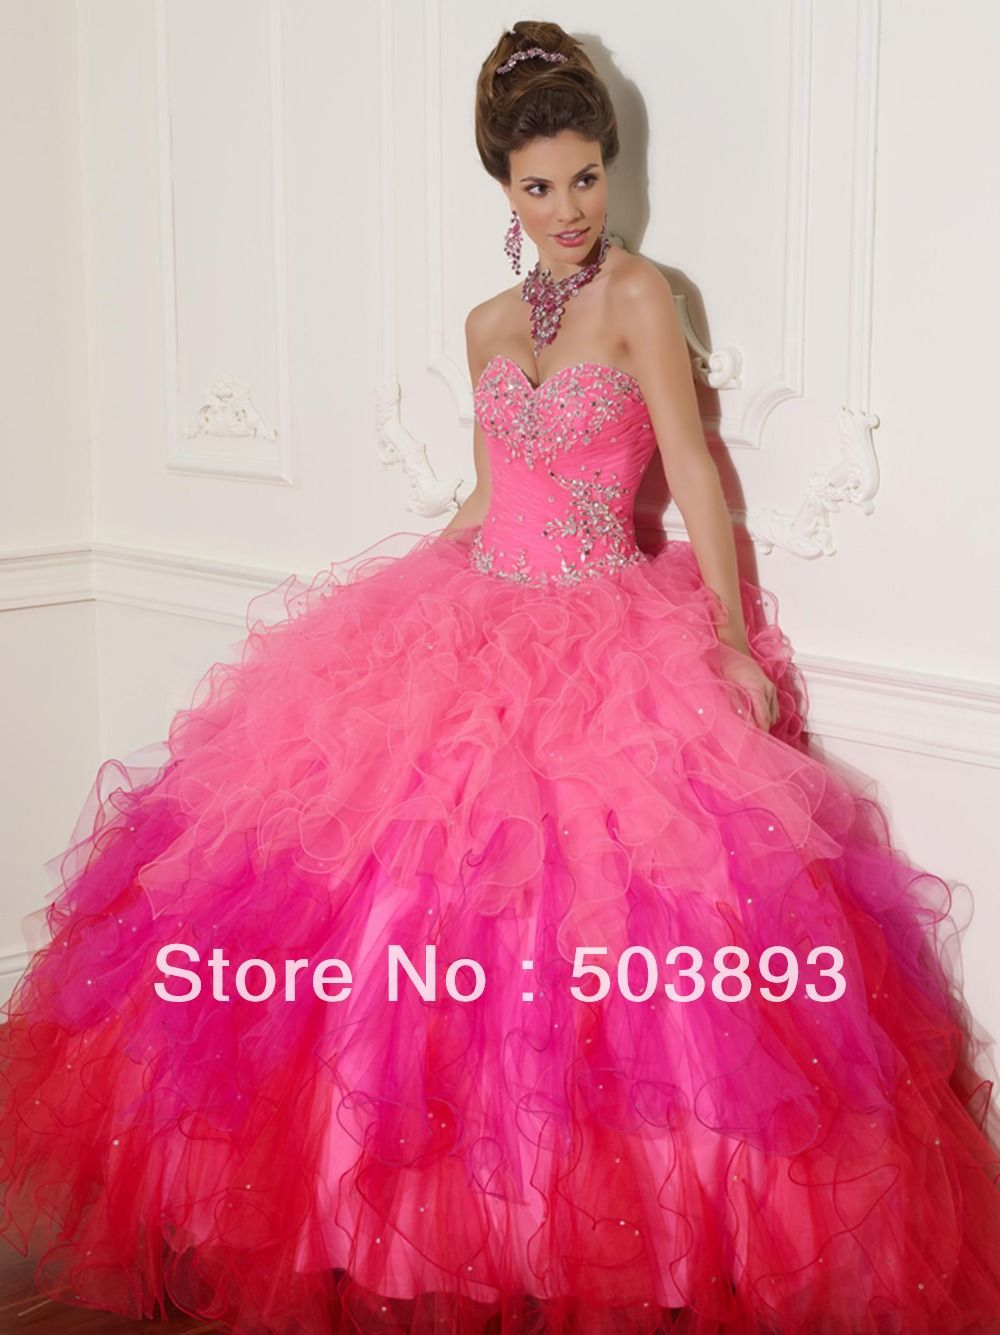 Masquerade ball gown dresses dress we can make the wedding